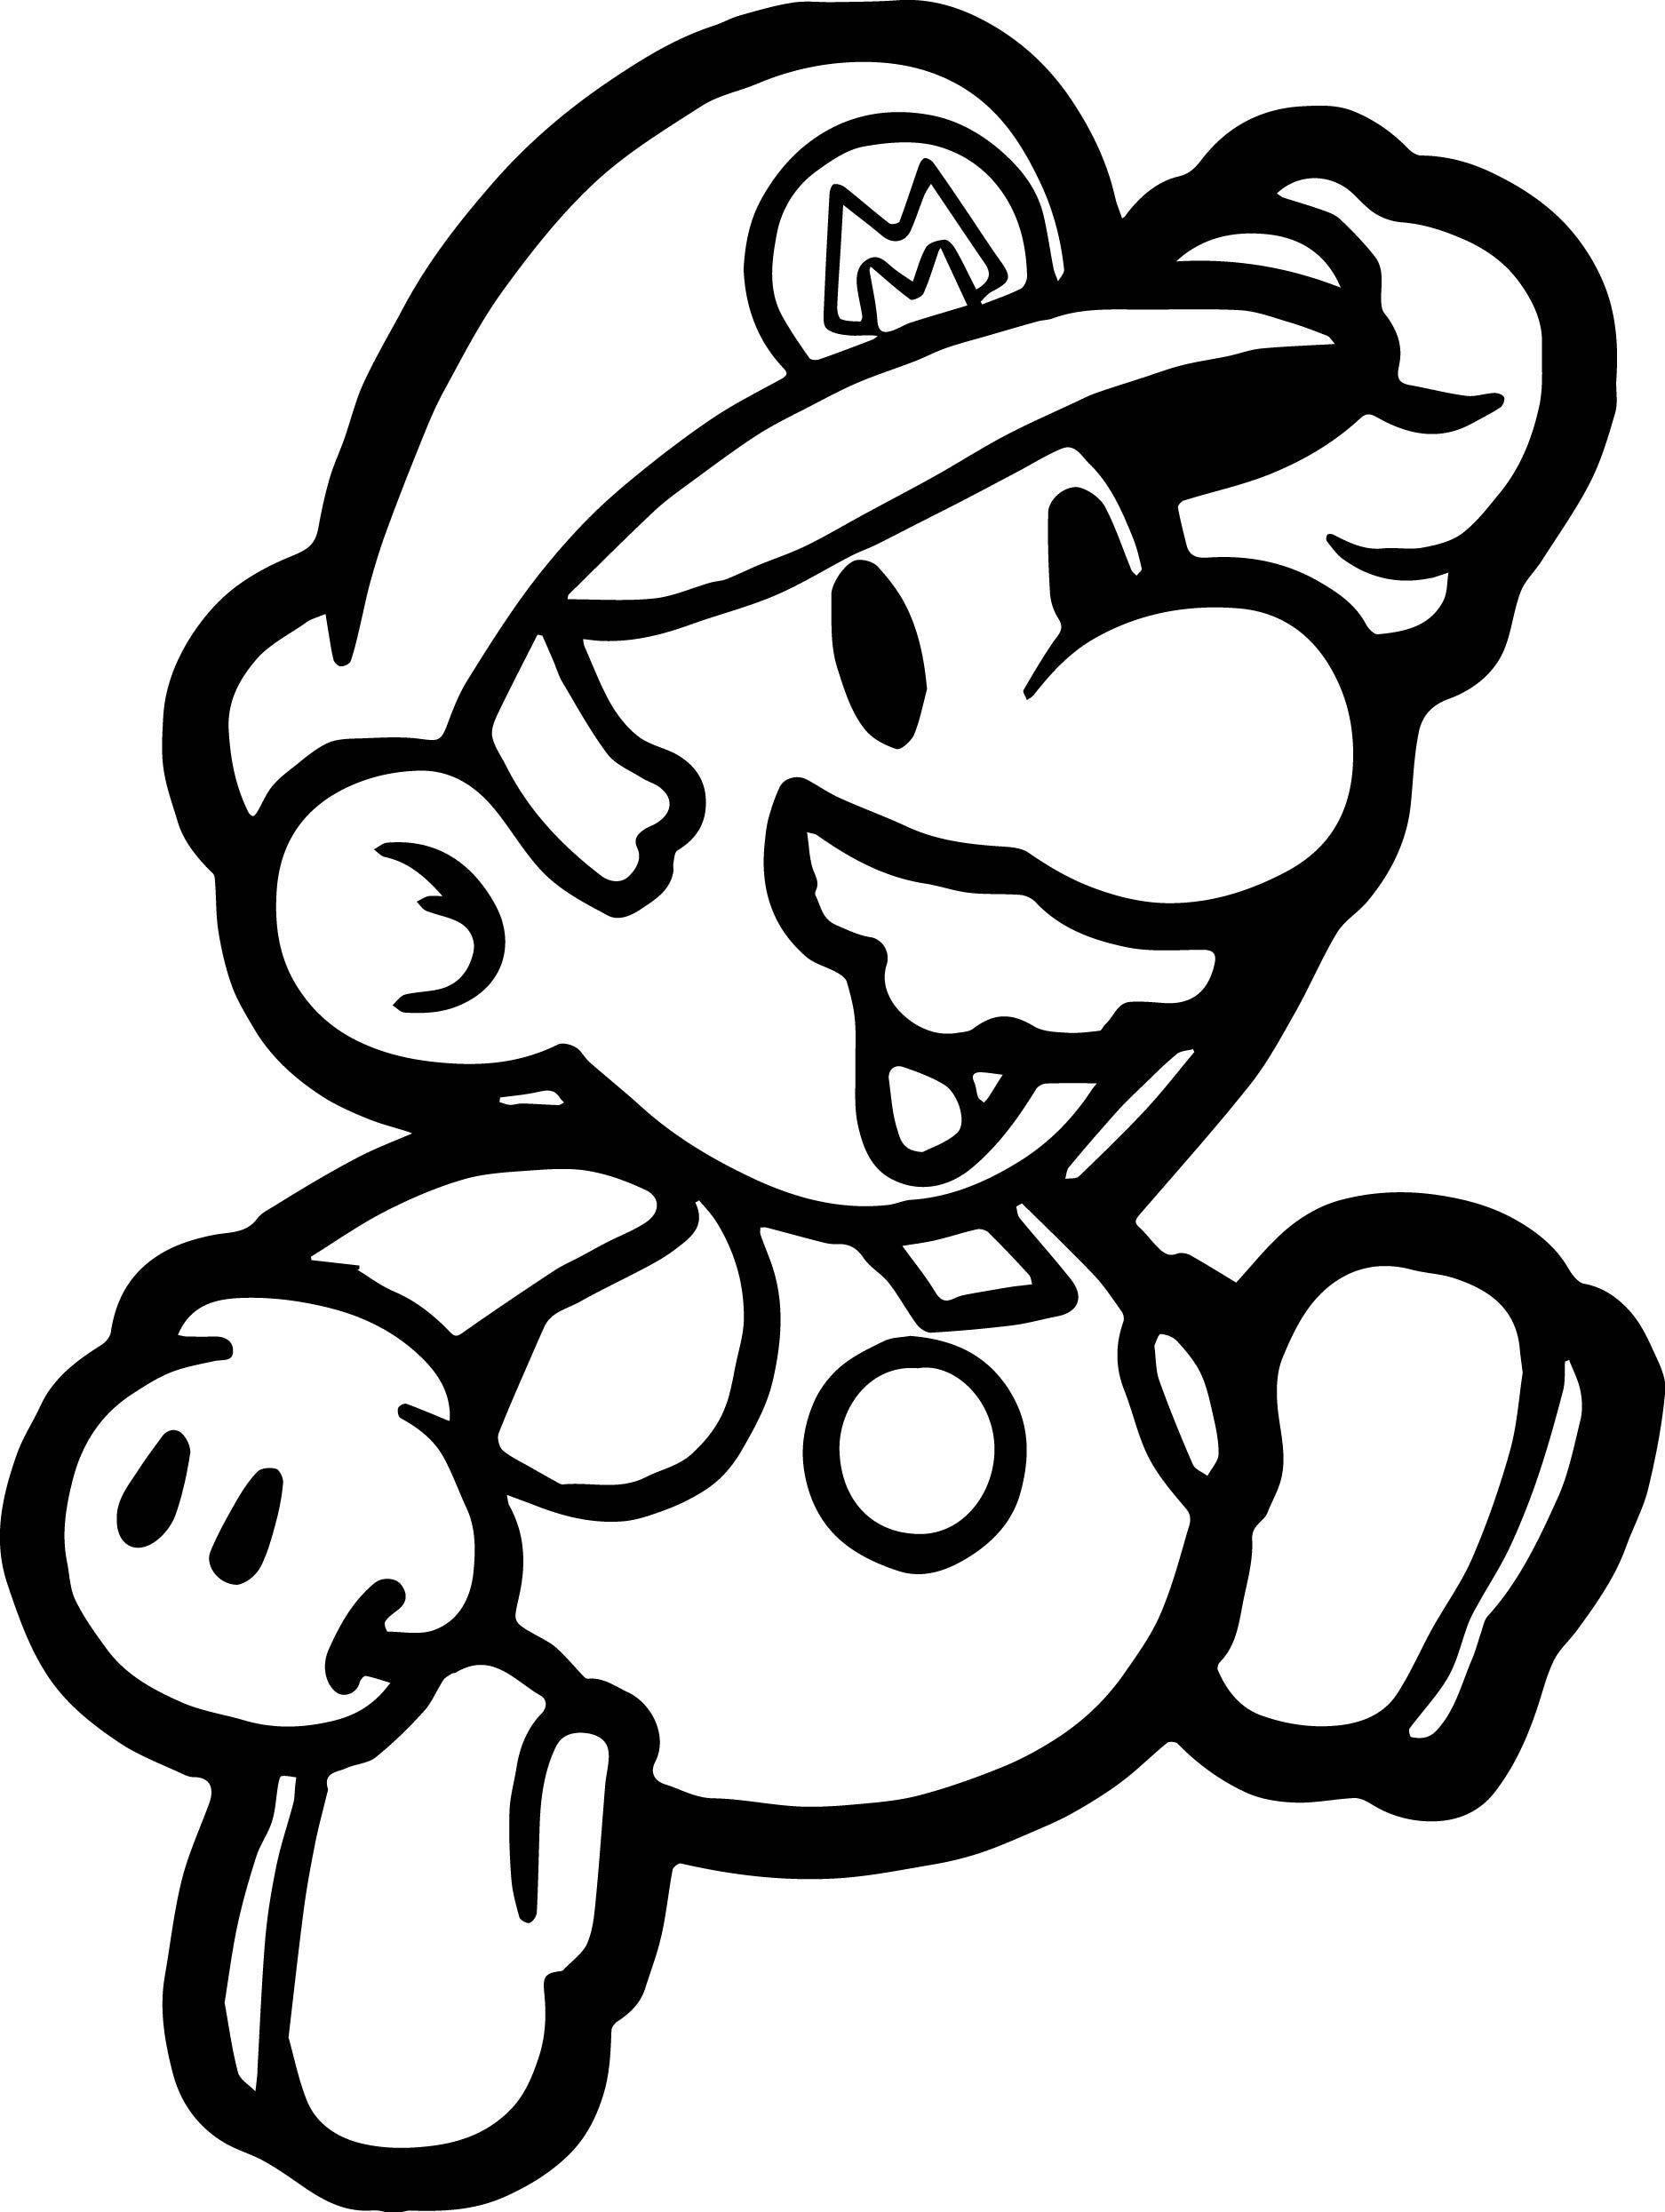 awesome Paper Mario Coloring Page Mario coloring pages